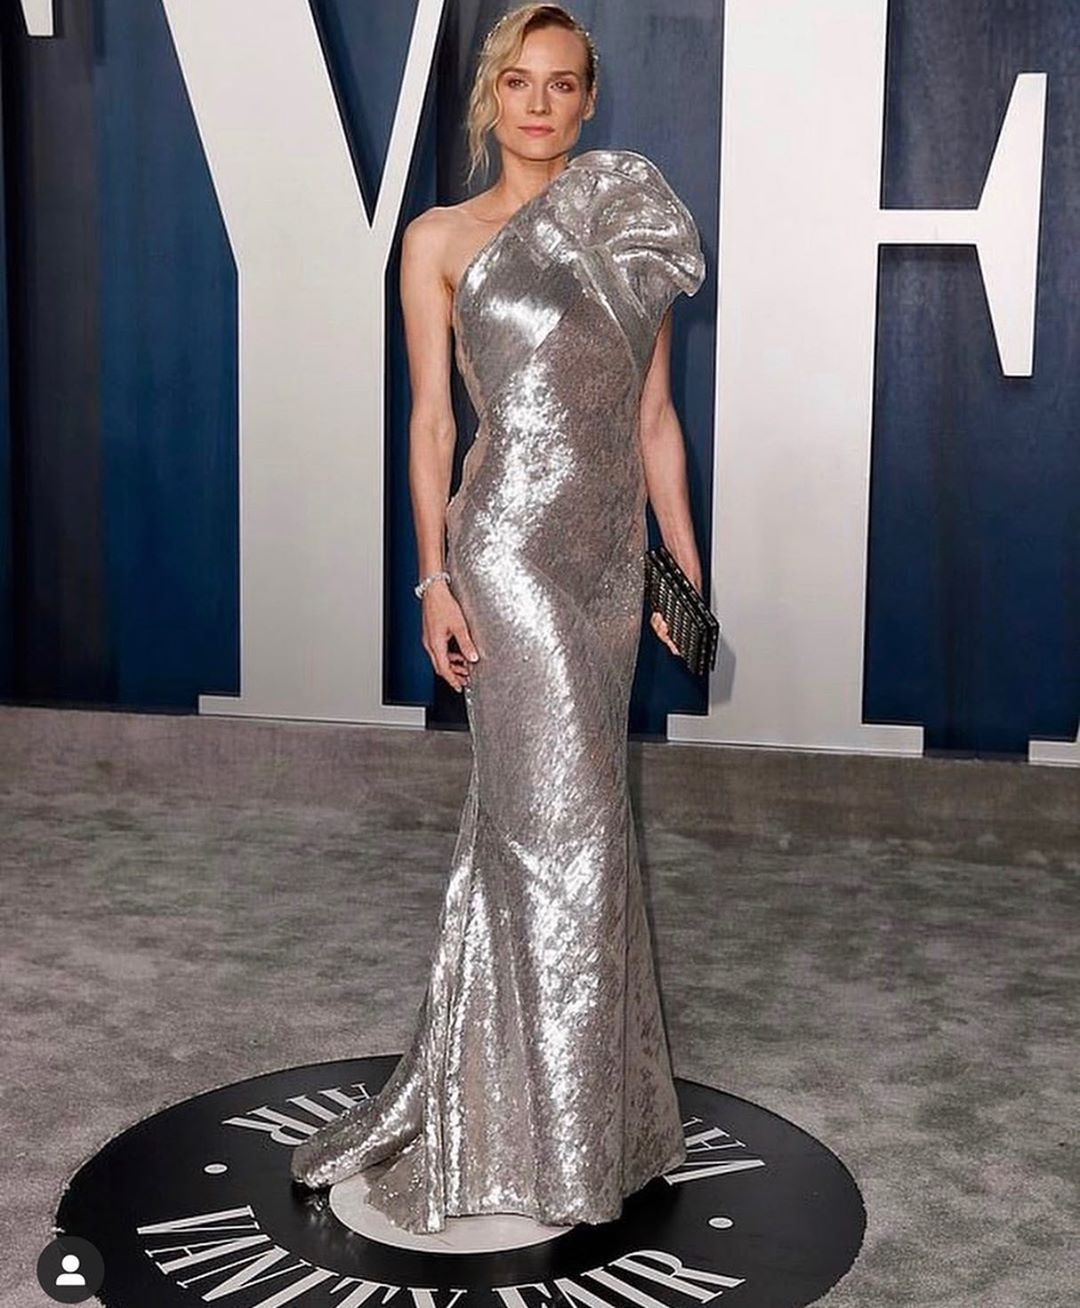 Amare On Instagram Nailed It Diane Kruger Was Our Favourite In Eliesaabworld From Yesterday S Vanity Fair Os In 2020 Vanity Fair Oscar Party Diane Kruger Couture